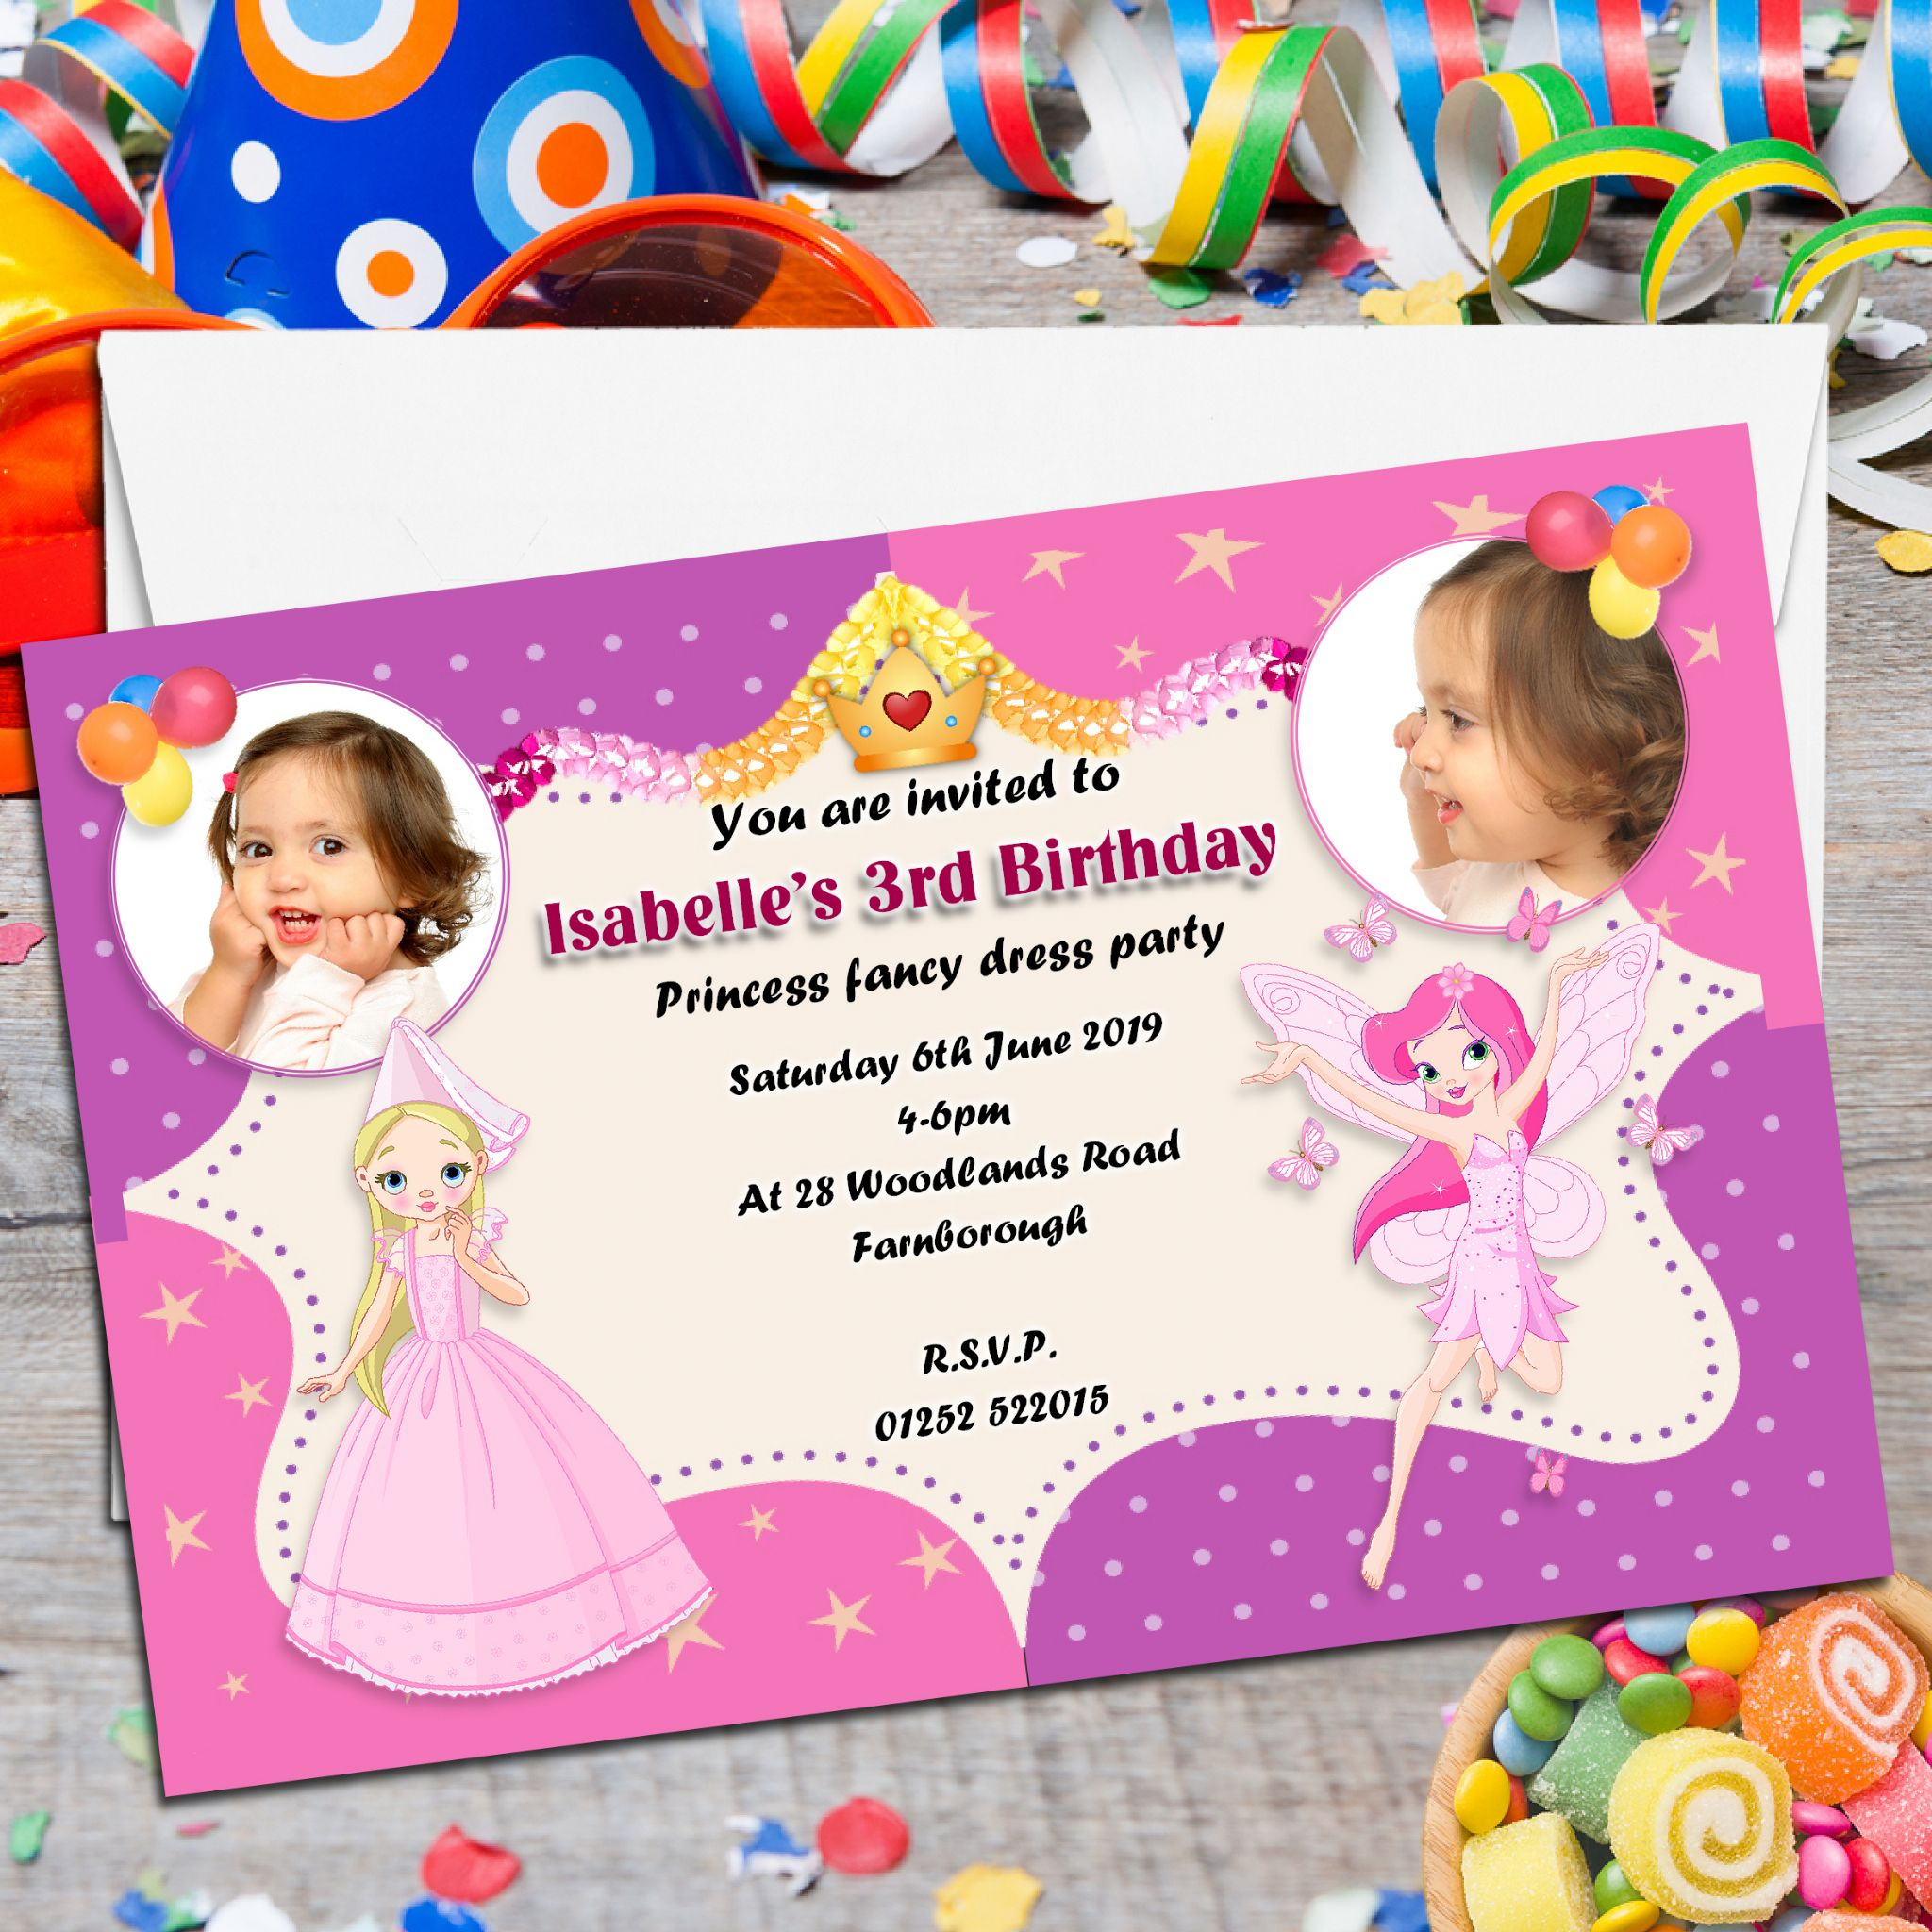 10 Personalised Princess & Fairies Birthday Party PHOTO Invitations N89